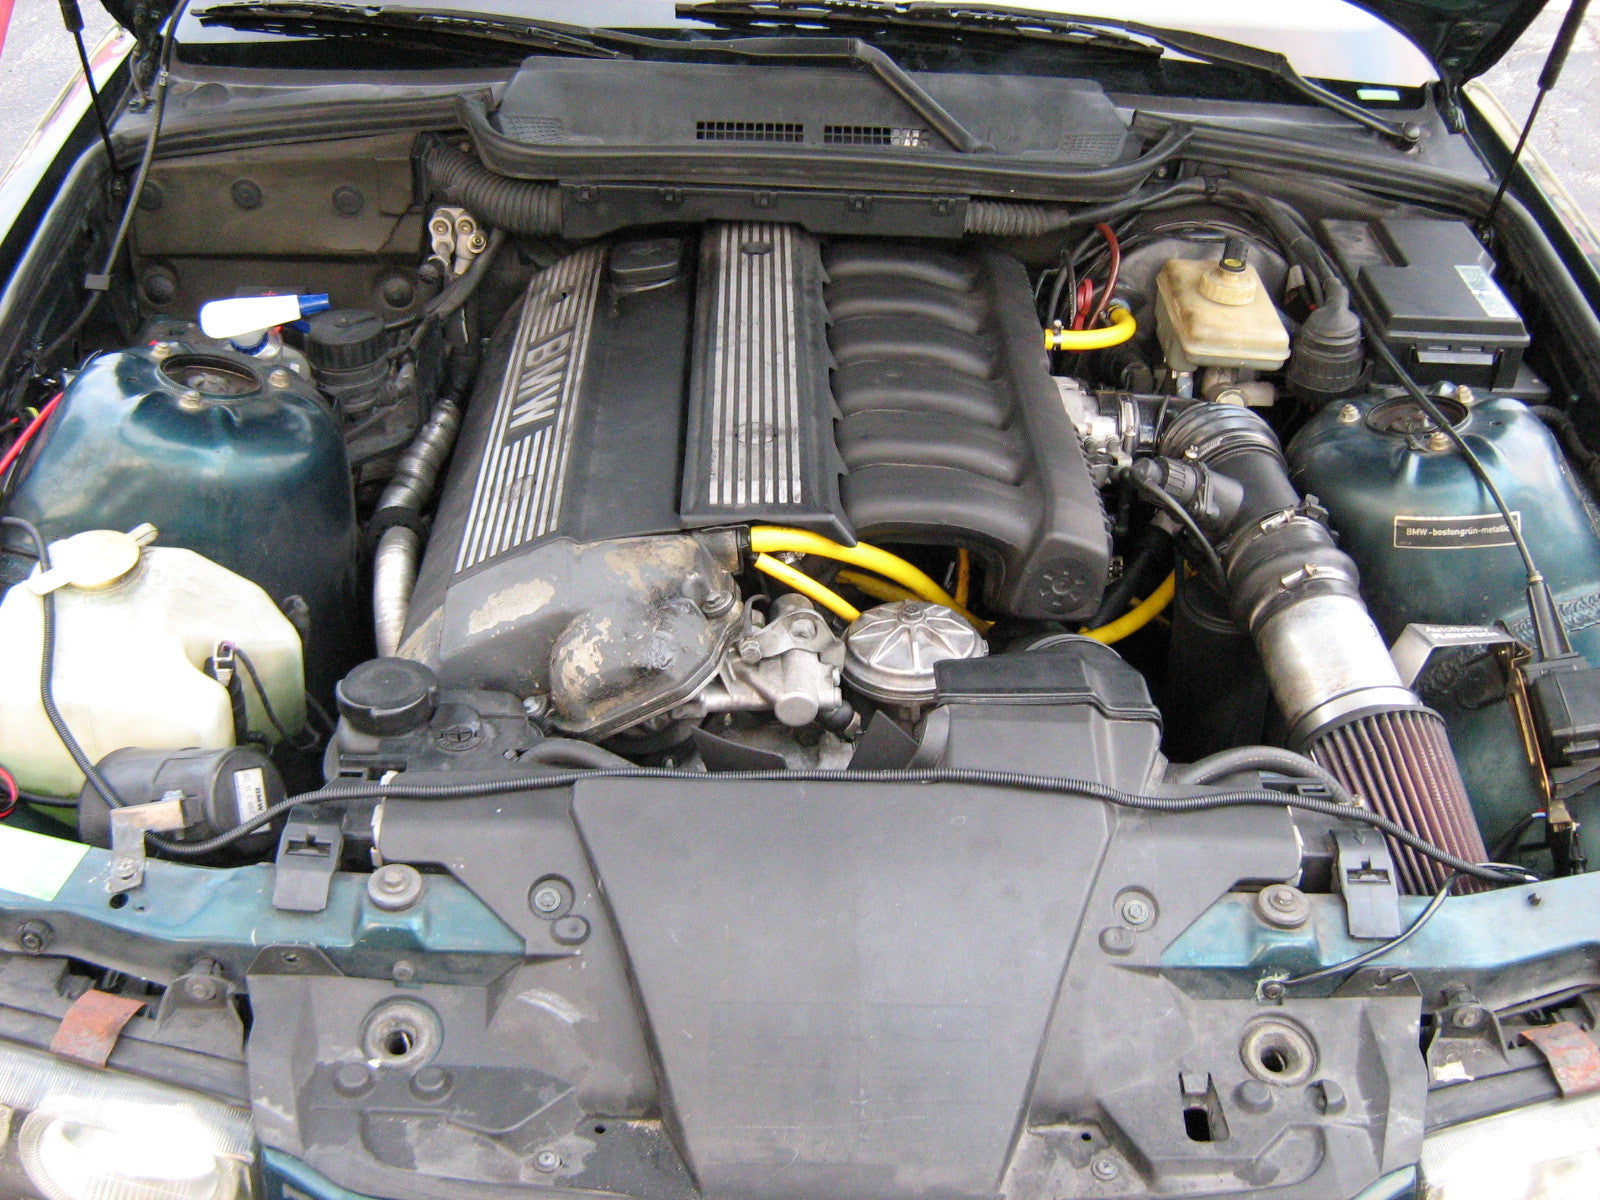 1994 318is Vacuum Diagram Electrical Wiring Diagrams Bmw 325i Engine 1995 318i Trusted Parts